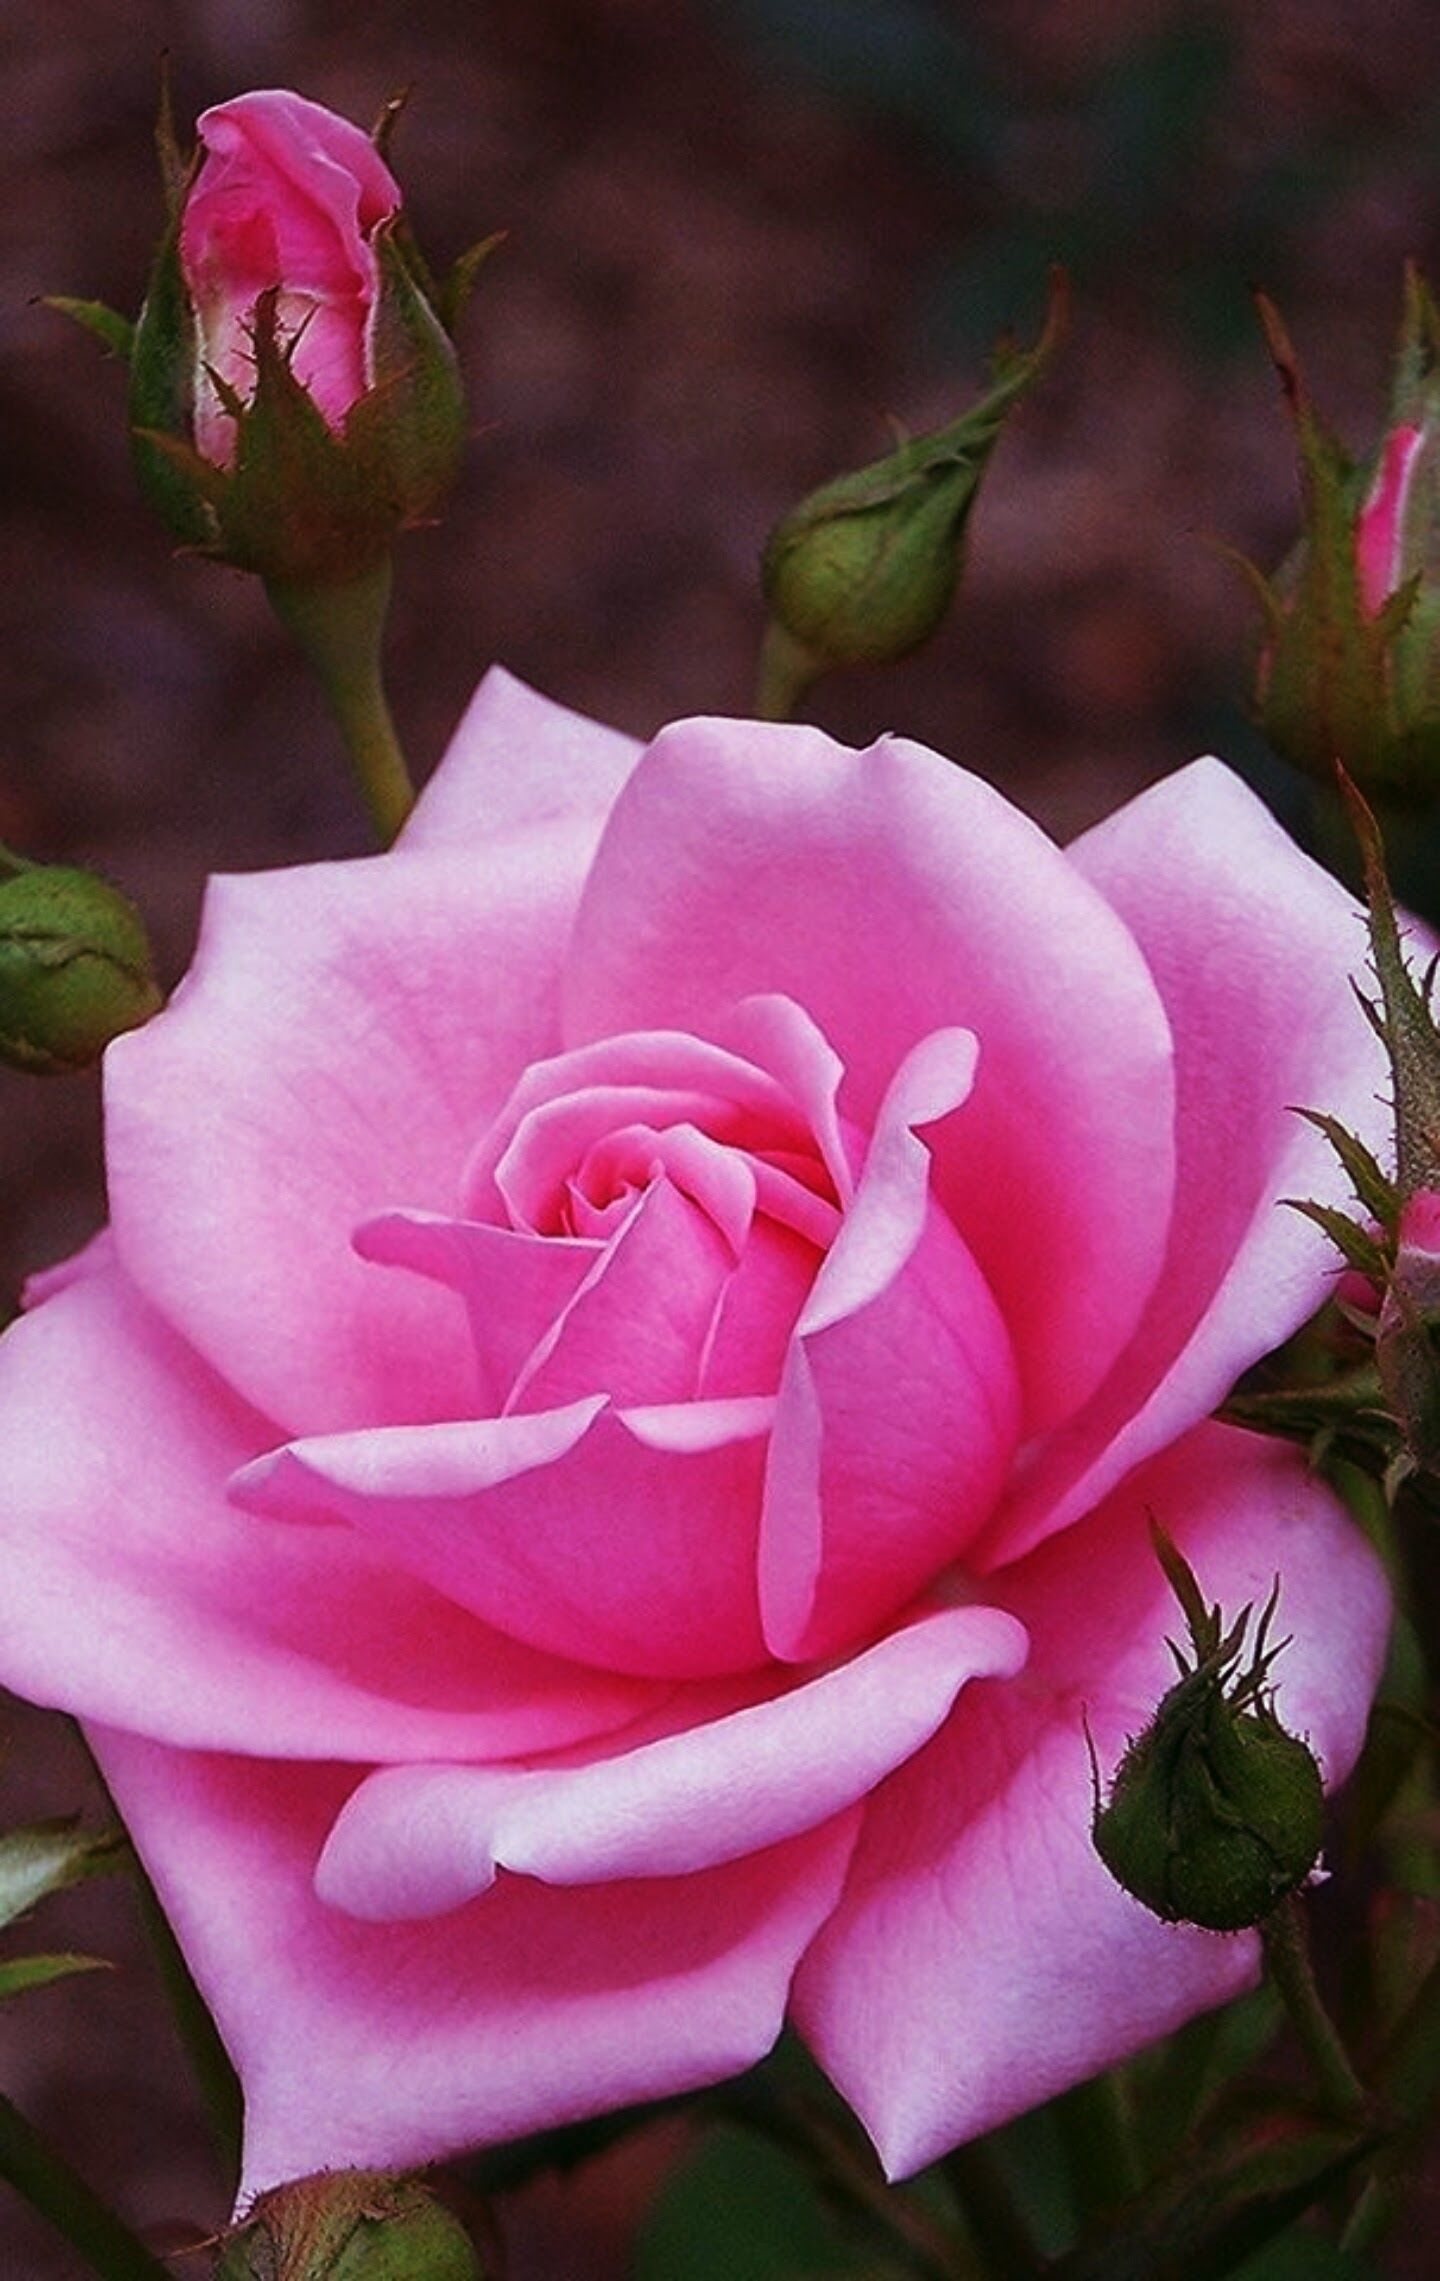 Pin by maksu po on ruusu pinterest flowers pink roses and purple roses pink rose flower pink flowers flowers for mom colorful roses izmirmasajfo